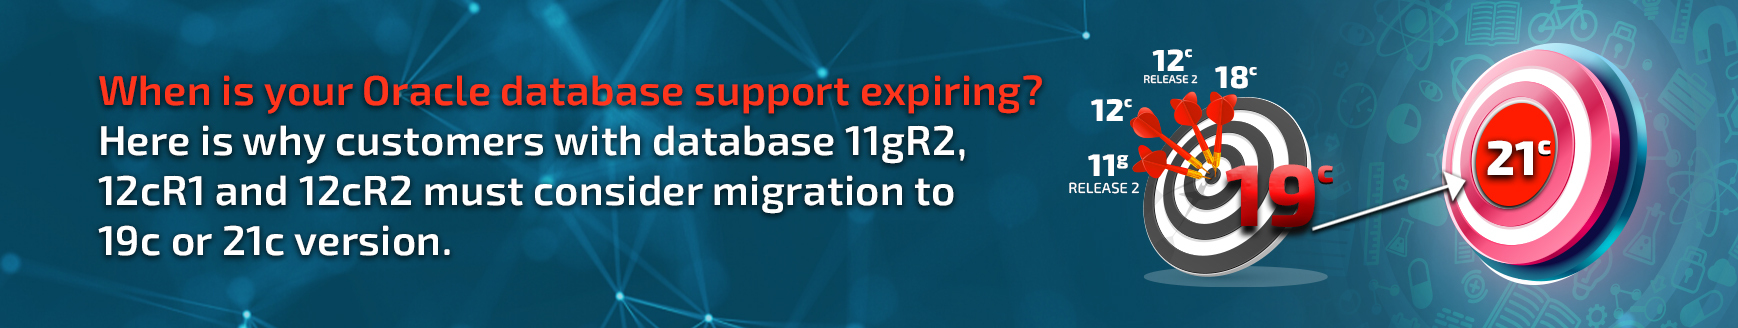 Why Upgrade to Oracle Database 19c or 21c?